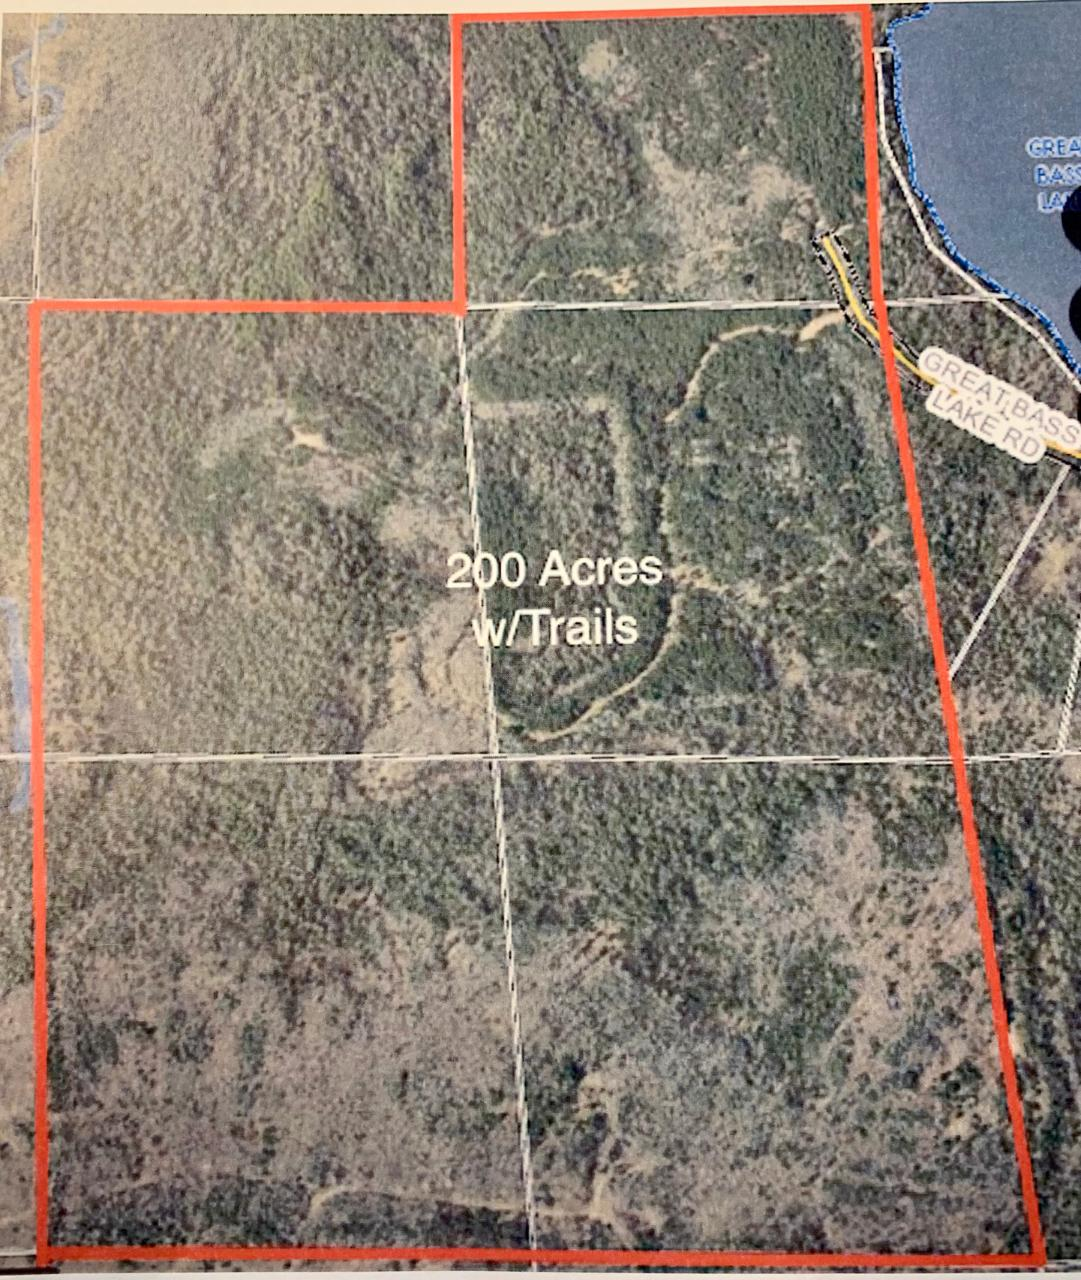 Fantastic location in Minocqua with 200 acres of land between Buckskin creek and Great Bass Lake. The property was just brought out of MFL Closed program and is ready for anything the new owner desires. This location offers fantastic hunting with large tracts of dense forest privately and state-owned surrounding it. This is your chance to make your mark in the beautiful Northwoods of Wisconsin! Truly endless possibilities are open to you with these parcels. Many hiking trails and other paths have already been wound through this pristine section of land. Don't wait to make an offer on this tremendous chunk of the Northwoods.